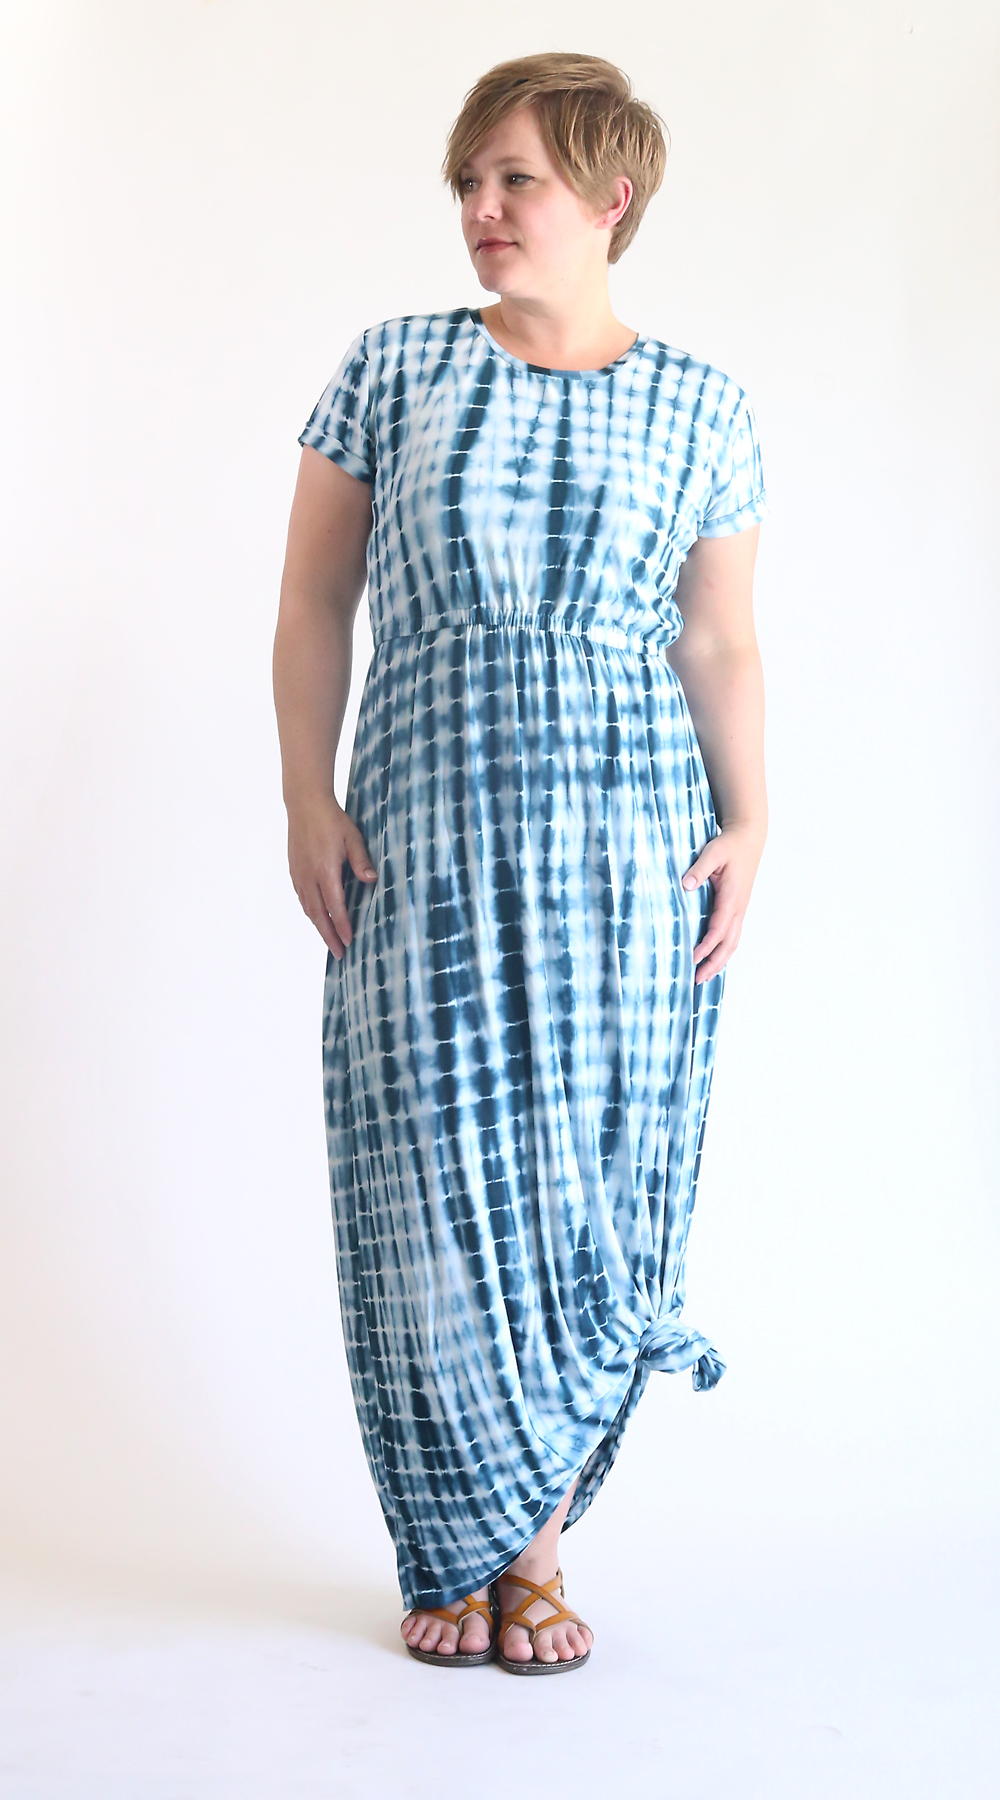 how to sew an easy cap sleeve maxi dress using a free tee shirt pattern. easy sewing tutorial. maxi dress with sleeves.